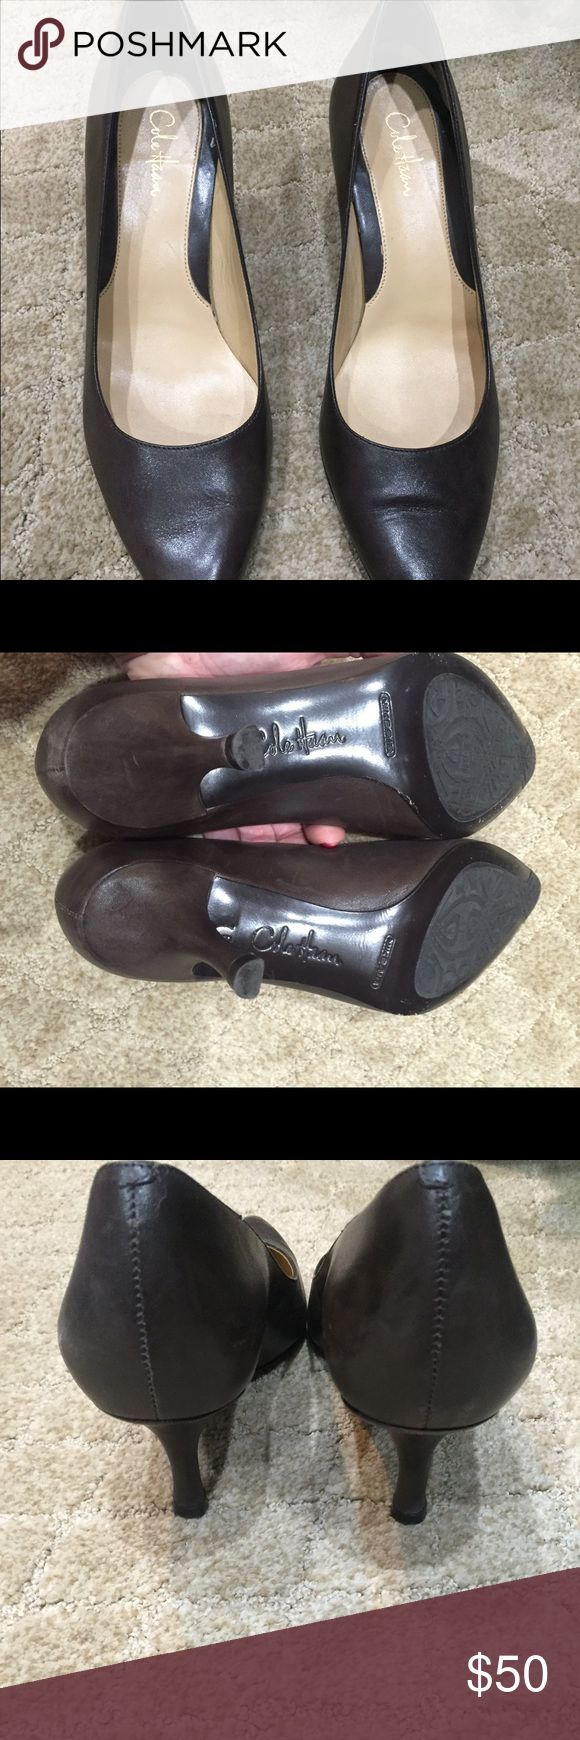 Cole Haan dark brown pumps Very comfortable. Nike technology in sole. Minor scuffs, as shown in picture. Great shoe. Cole Haan Shoes Heels